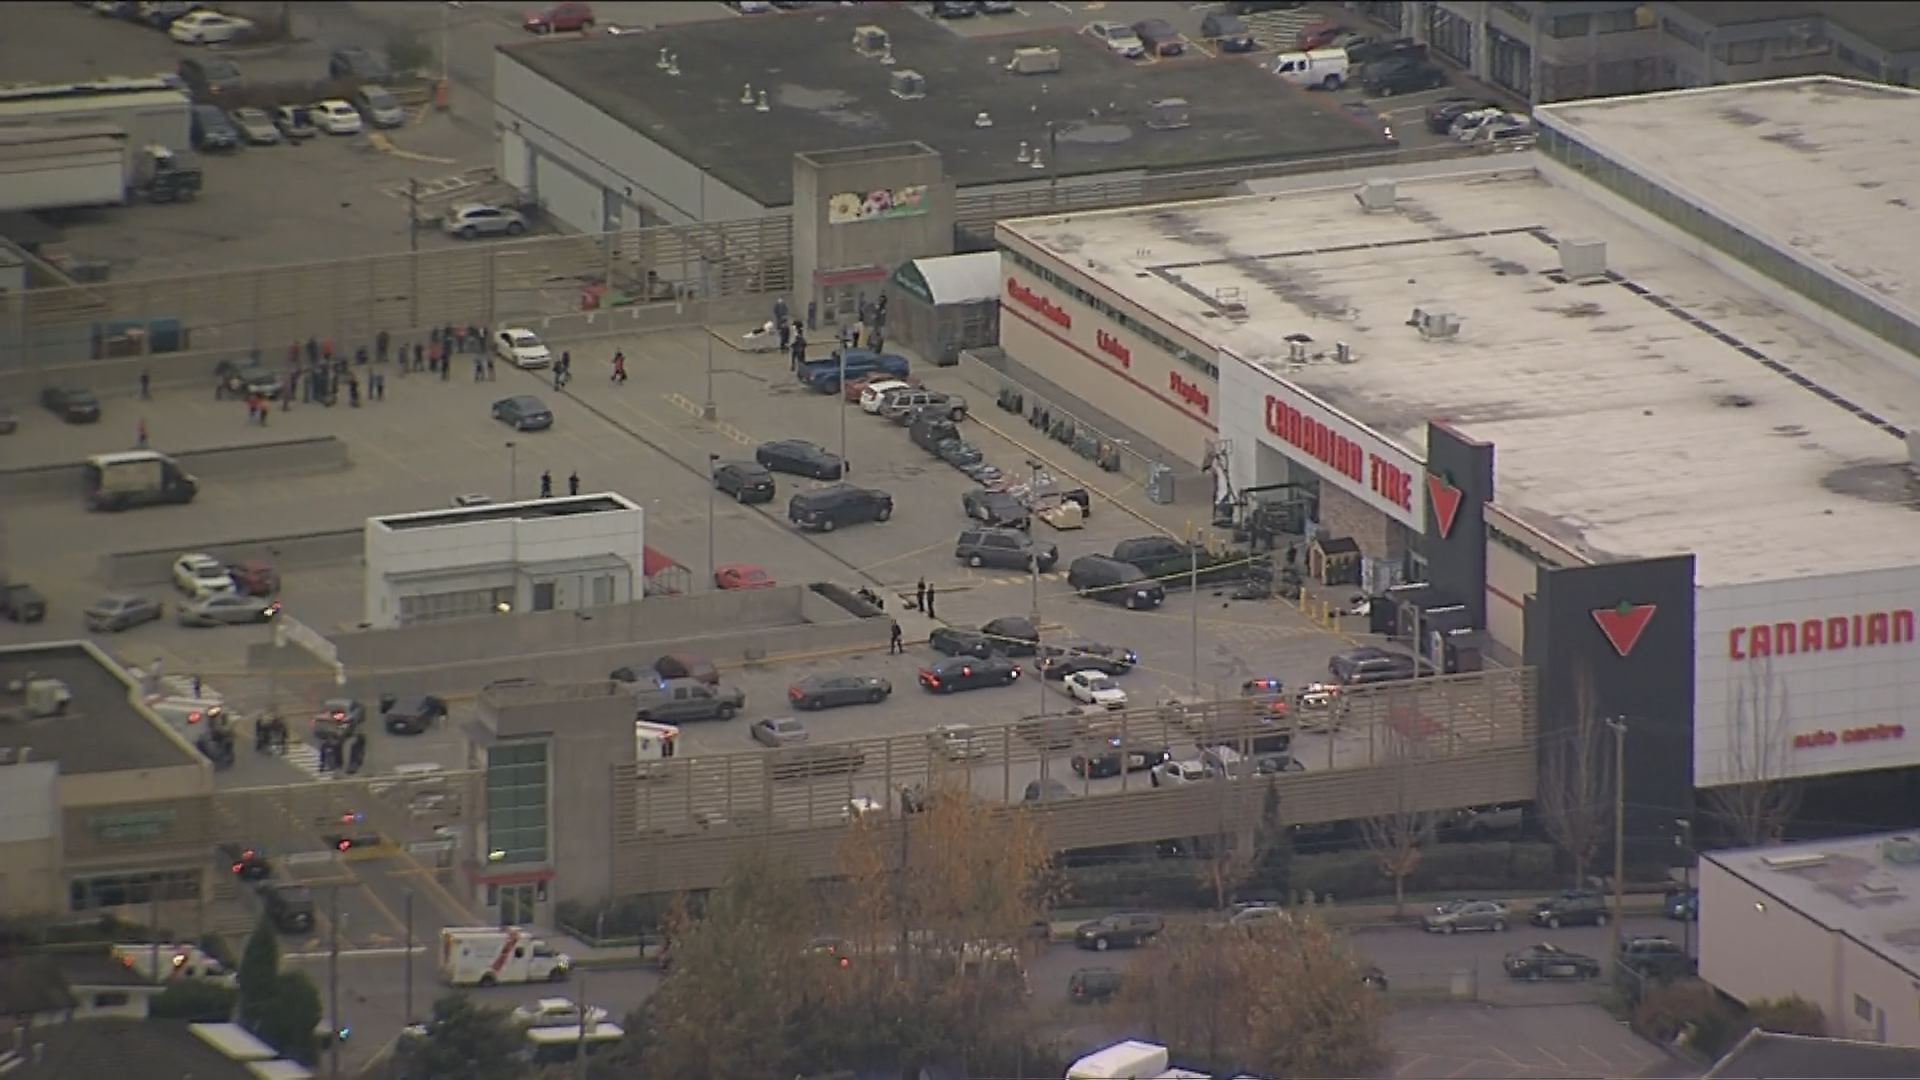 Police incident at canadian tire on grandview watch news videos online keyboard keysfo Images